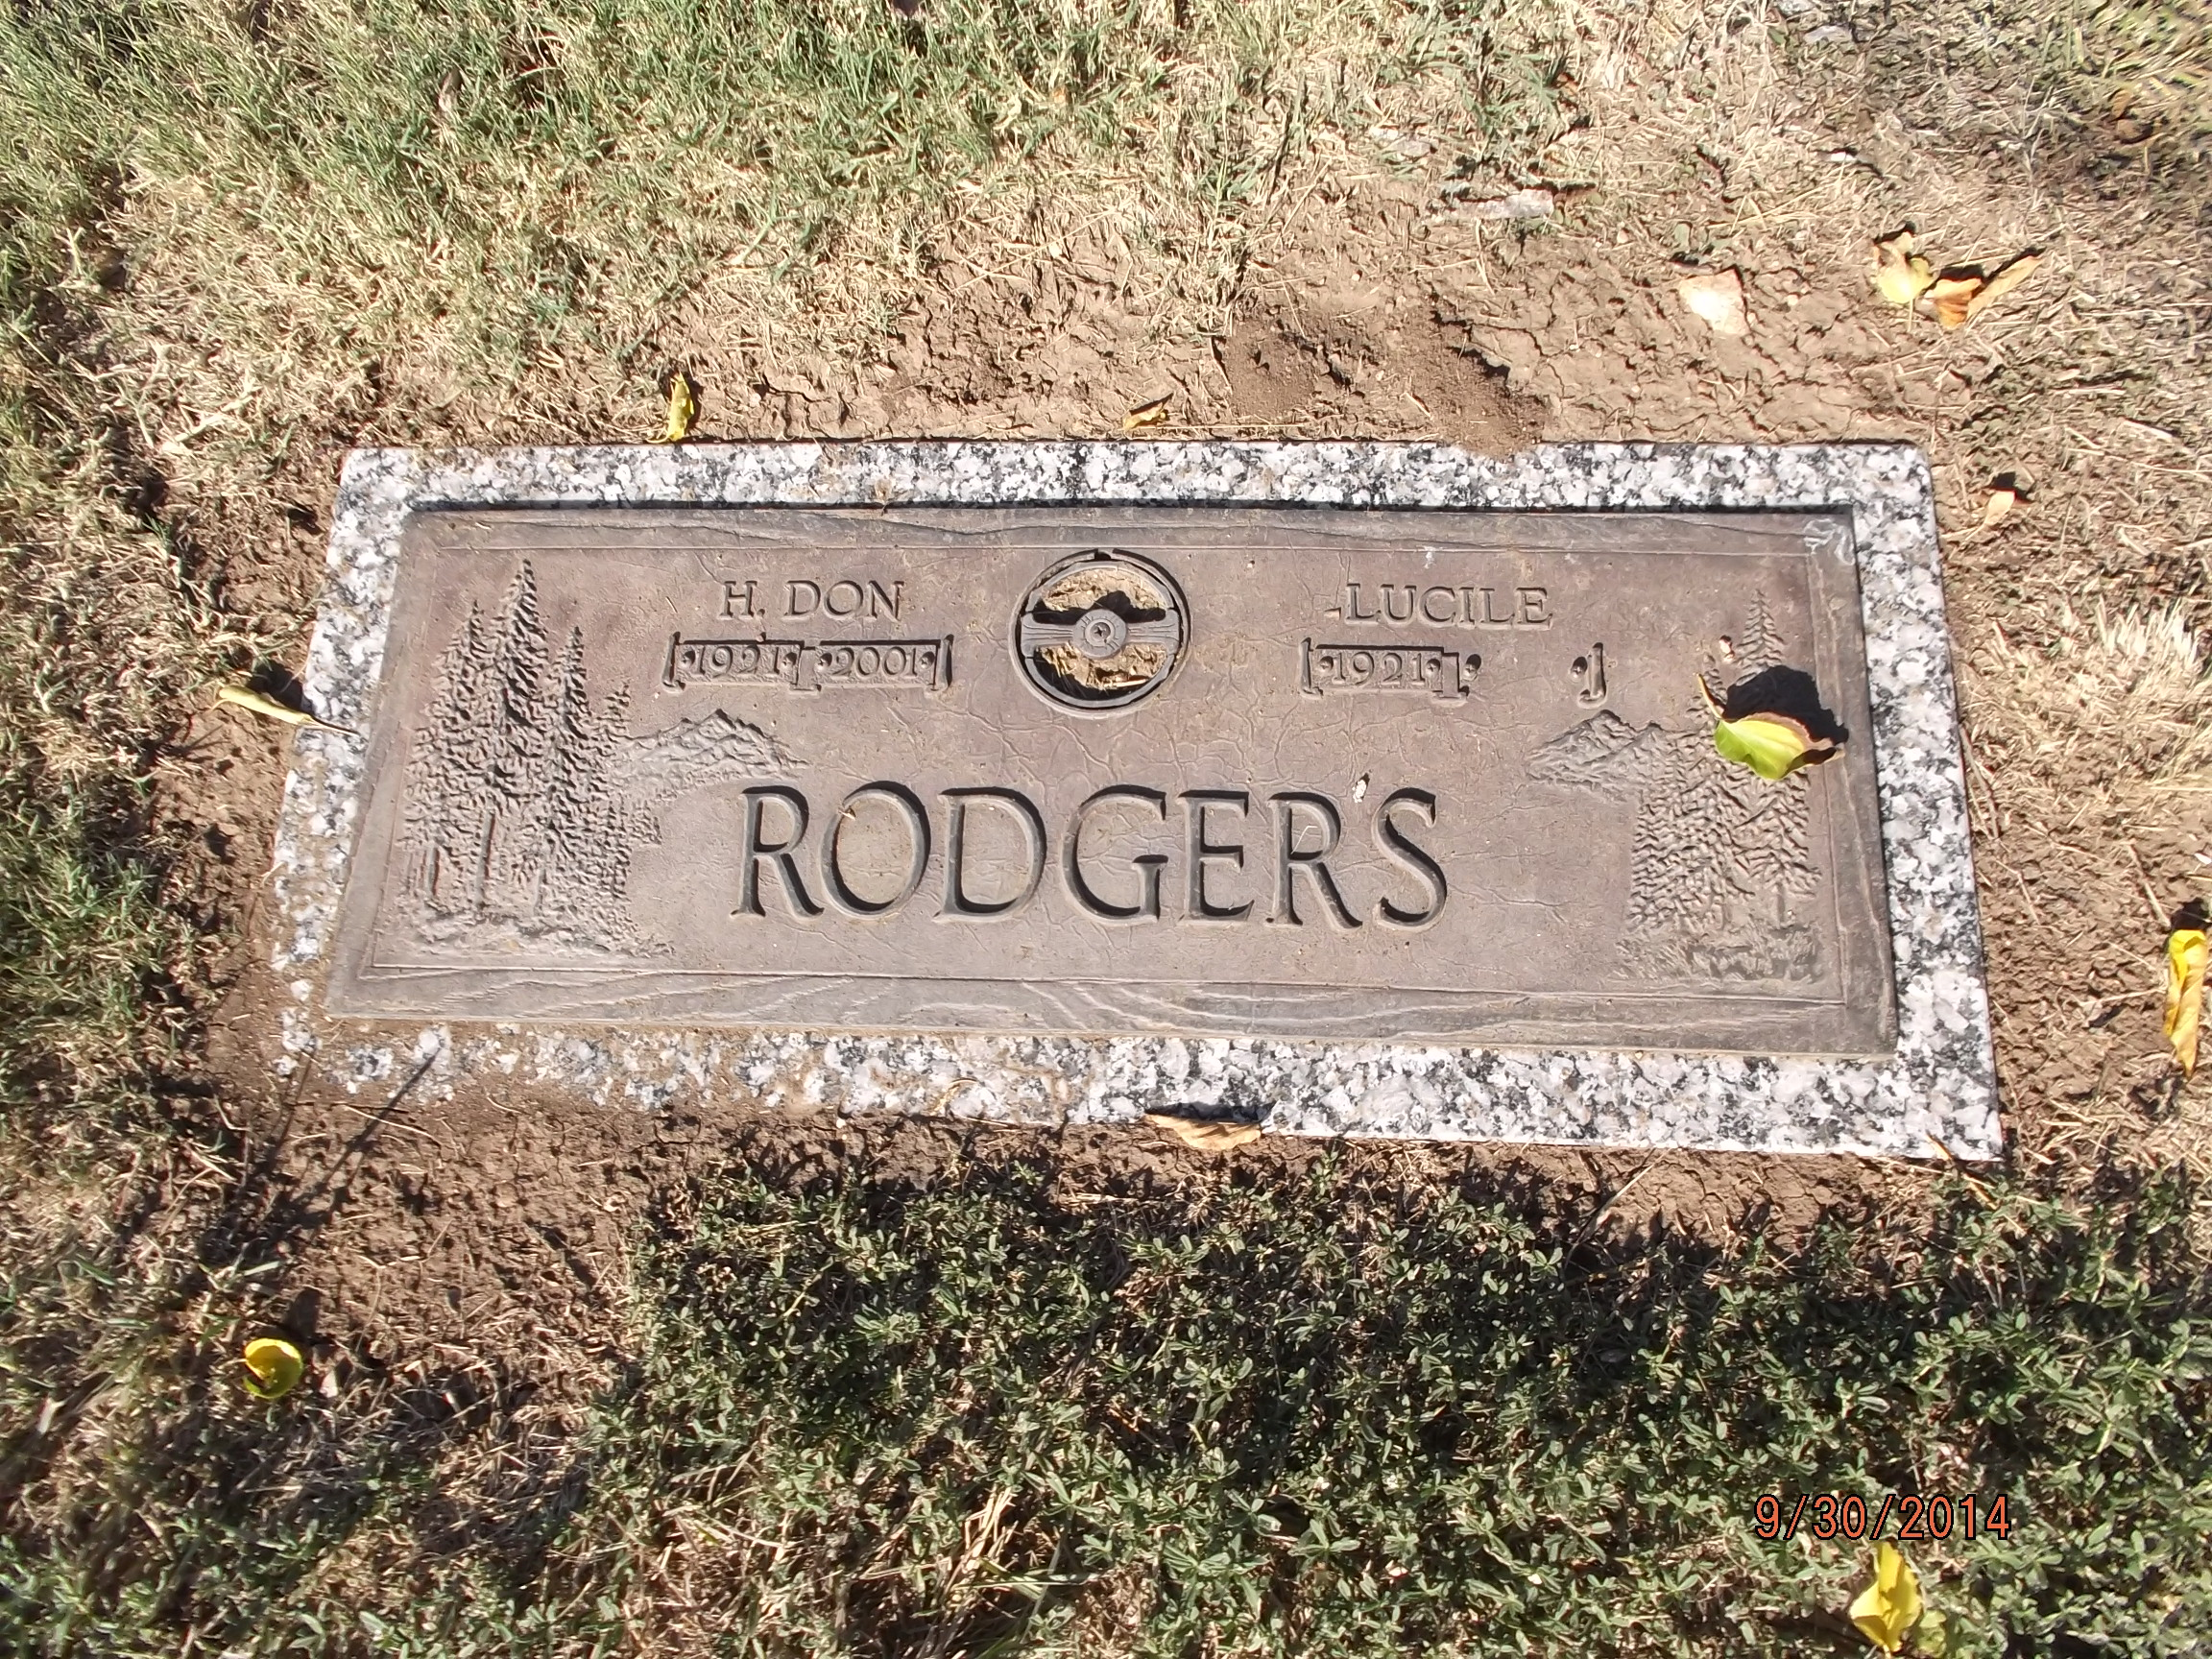 H. Don Rodgers